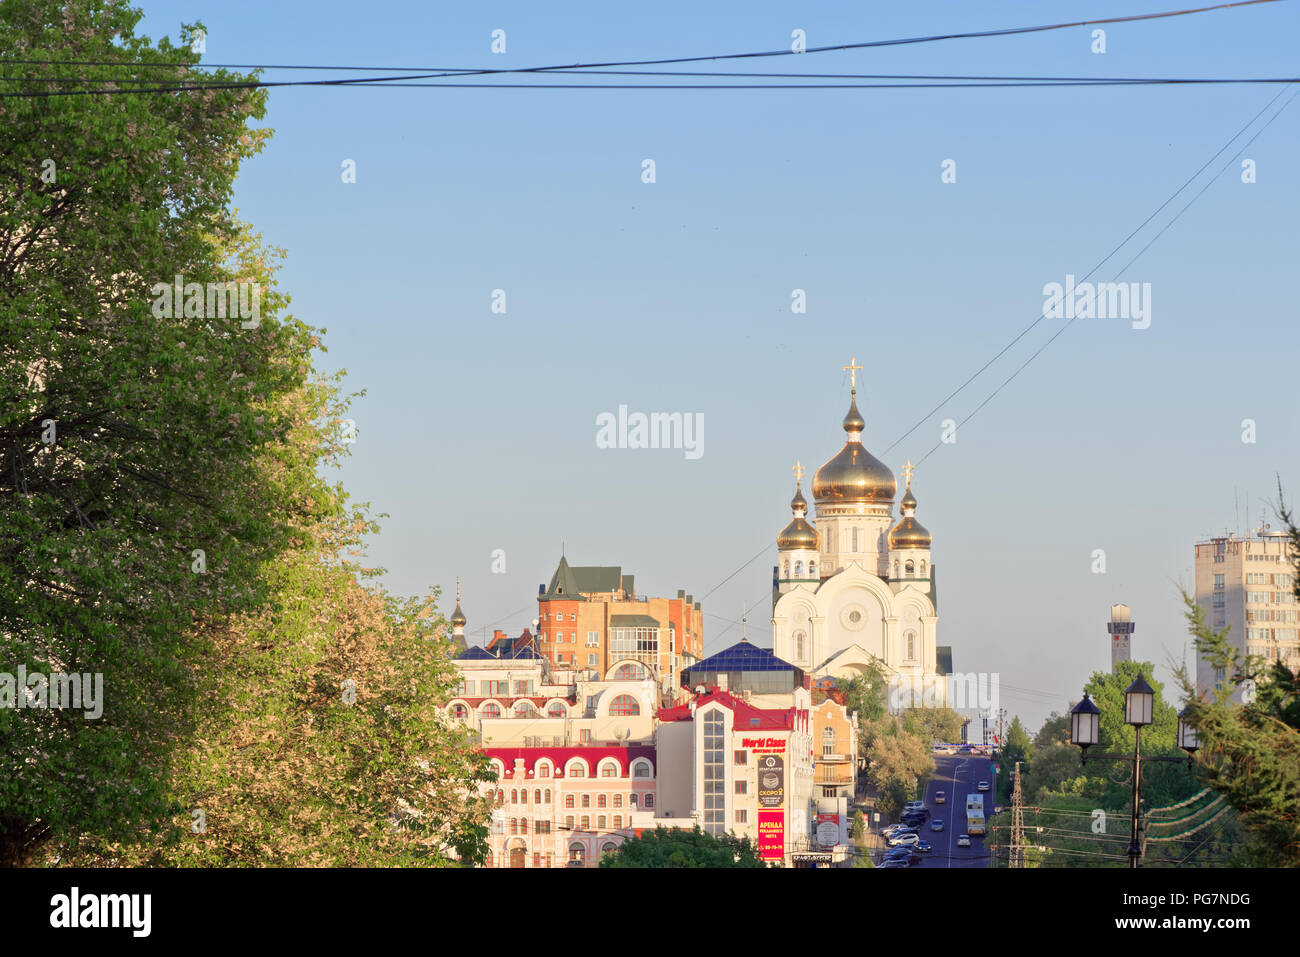 Khabarovsk, Russia - May 29, 2018: View to the russian orthodox church with golden roofs (cupola) and residential buildings in the distant. - Stock Image